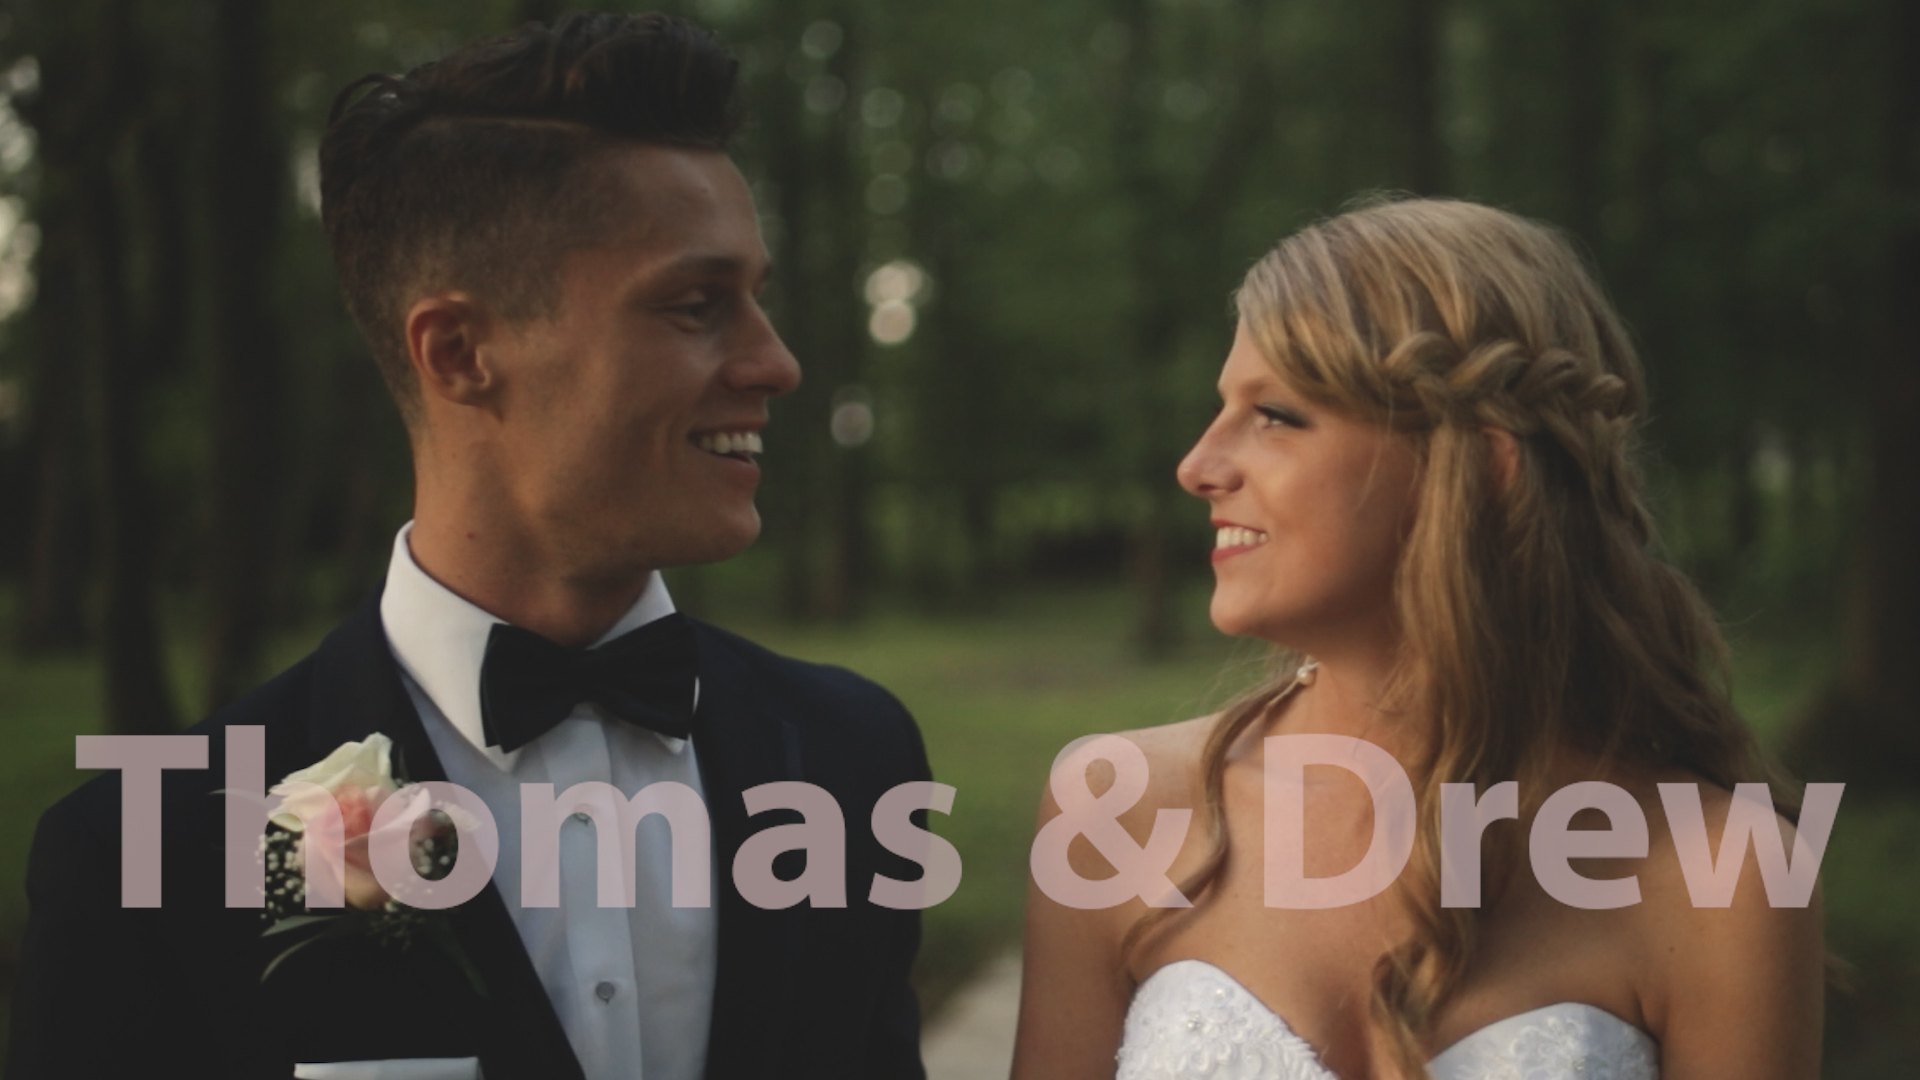 Thomas + Drew | Sonora, Kentucky | Thurman Landing